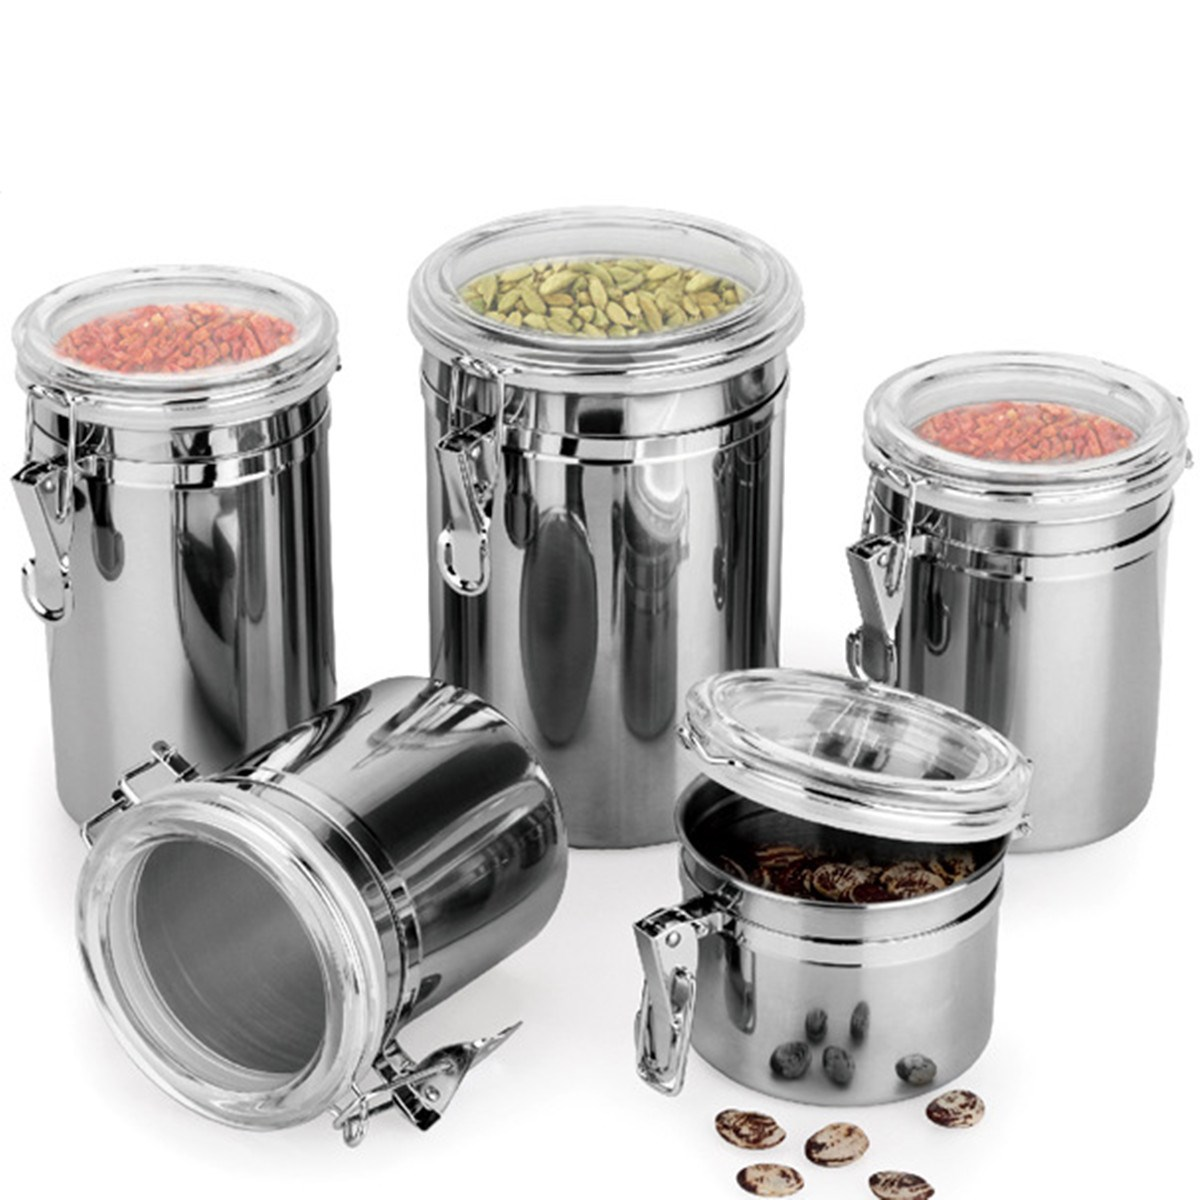 metal storage food bottles sugar tea coffee beans canisters snack cans kitchen container tools 4 size - Metal Storage Containers